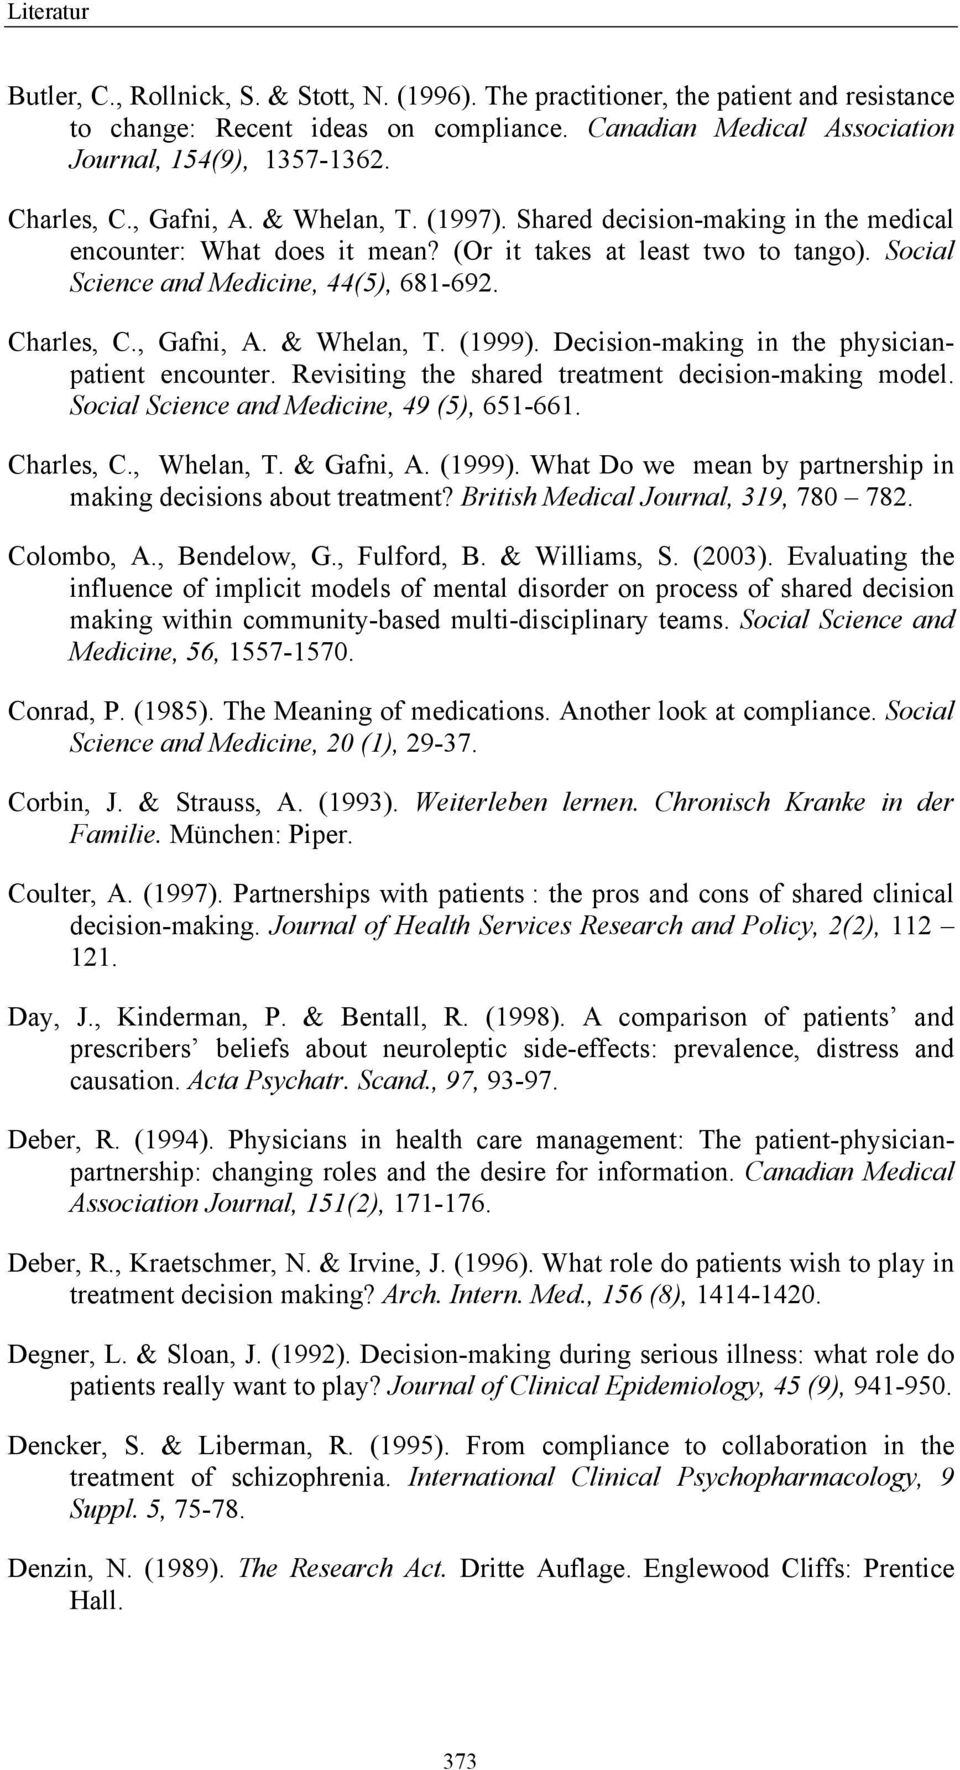 , Gafni, A. & Whelan, T. (1999). Decision-making in the physicianpatient encounter. Revisiting the shared treatment decision-making model. Social Science and Medicine, 49 (5), 651-661. Charles, C.